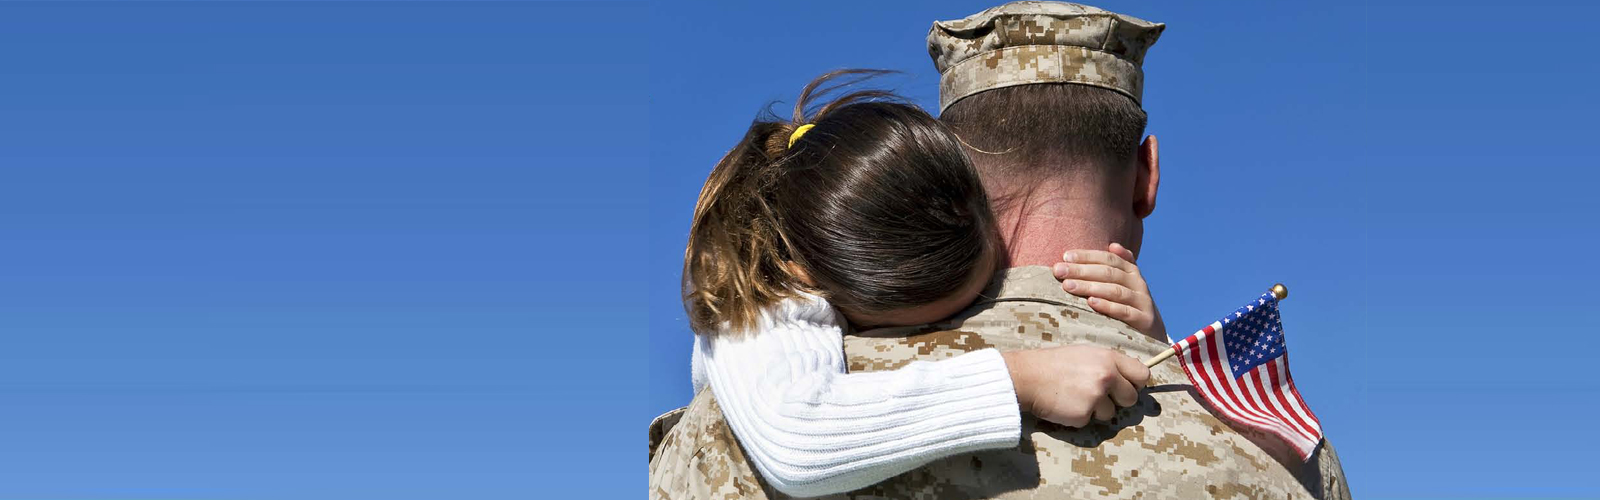 Military Families - Father and Daughter